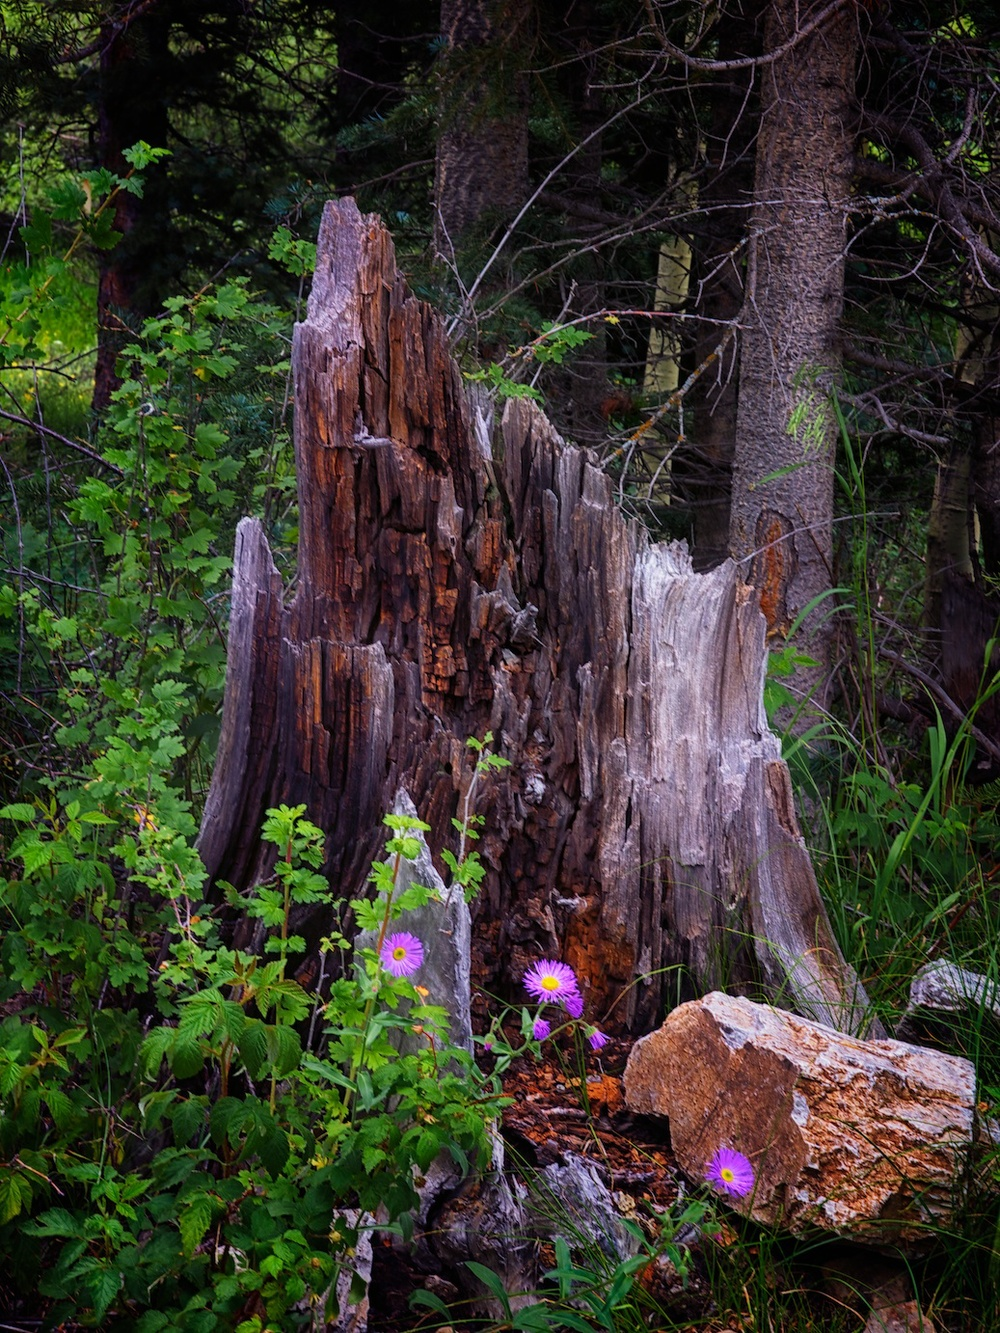 just a tree stump with a nice rock and some flowers